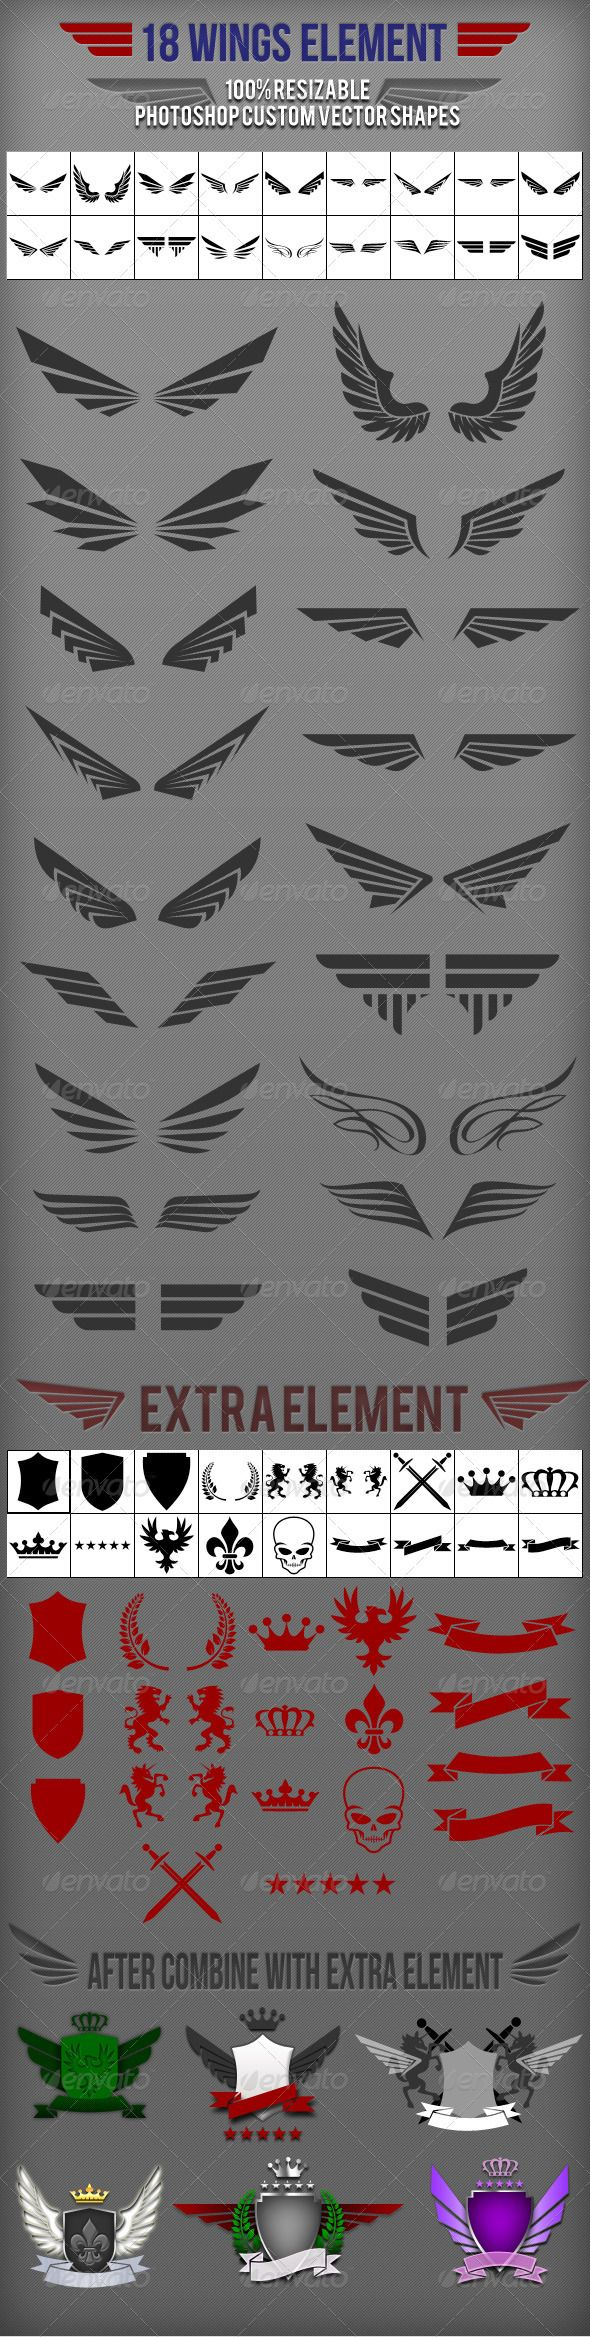 18 Wings Photoshop Custom Shapes 18 unique wings element with 18 extra element…